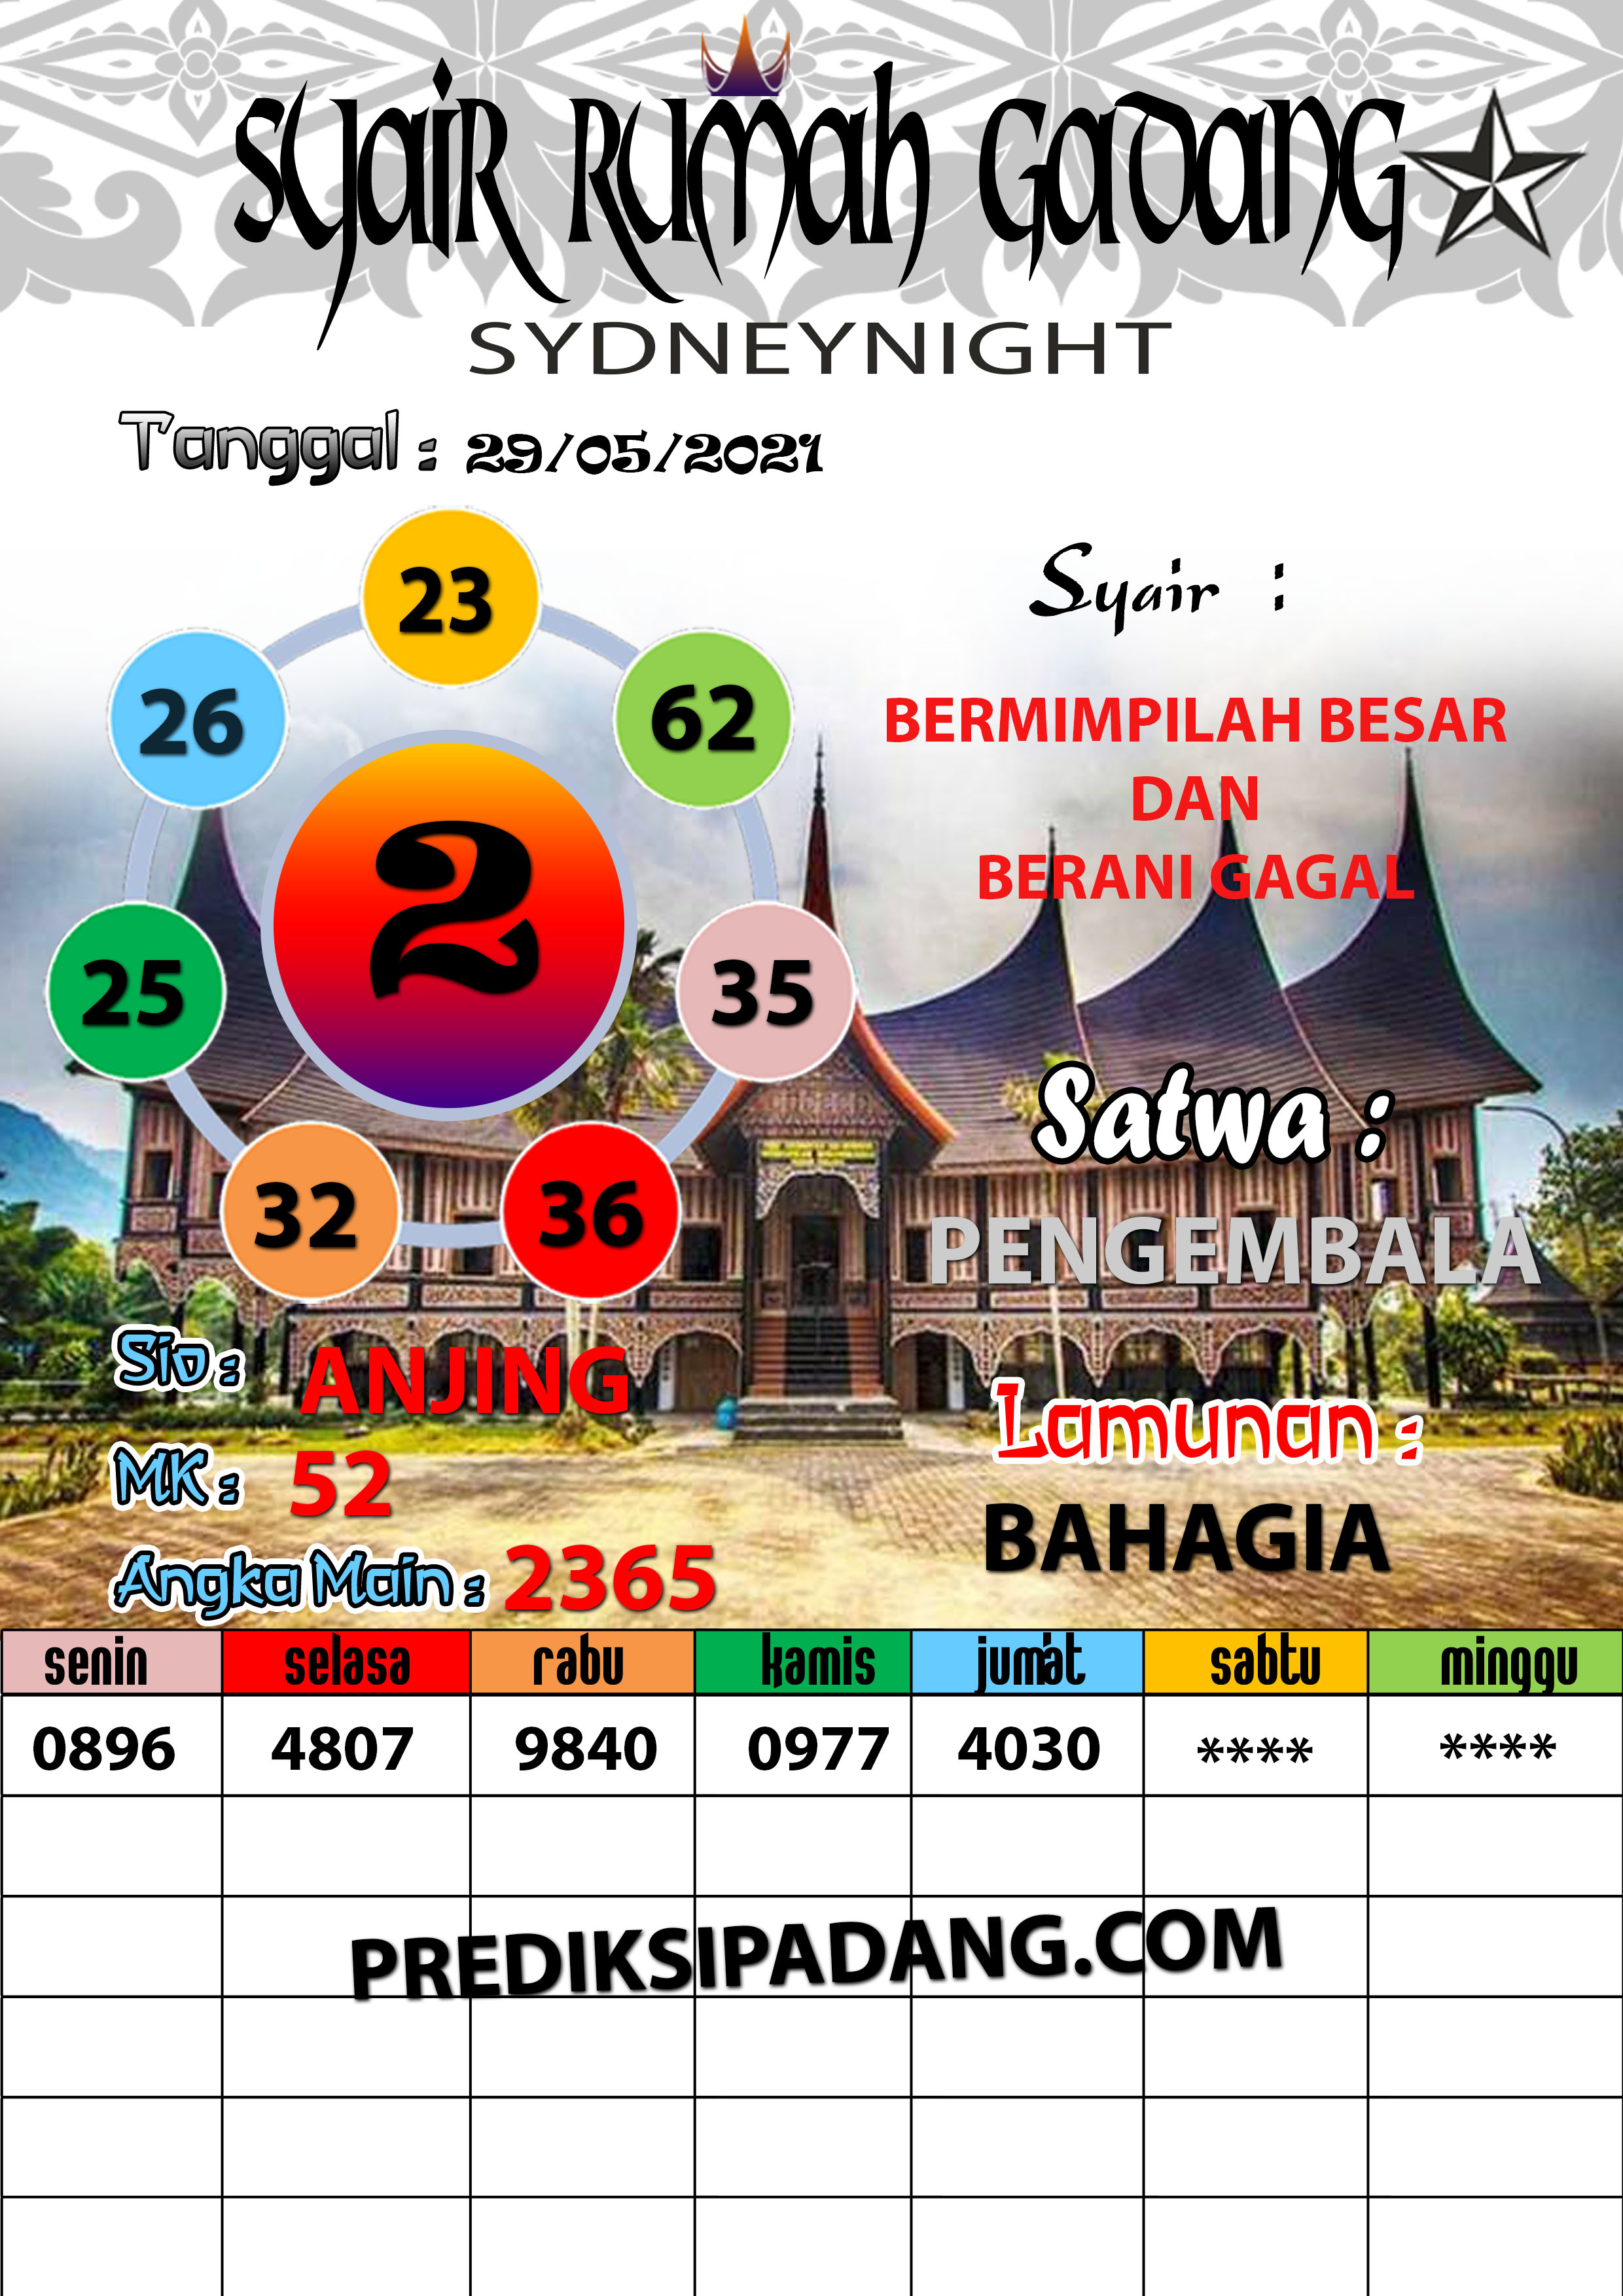 PADANG%20TOTO%20SIDNEYNIGHT-Recovered-Recovered%281%29.jpg